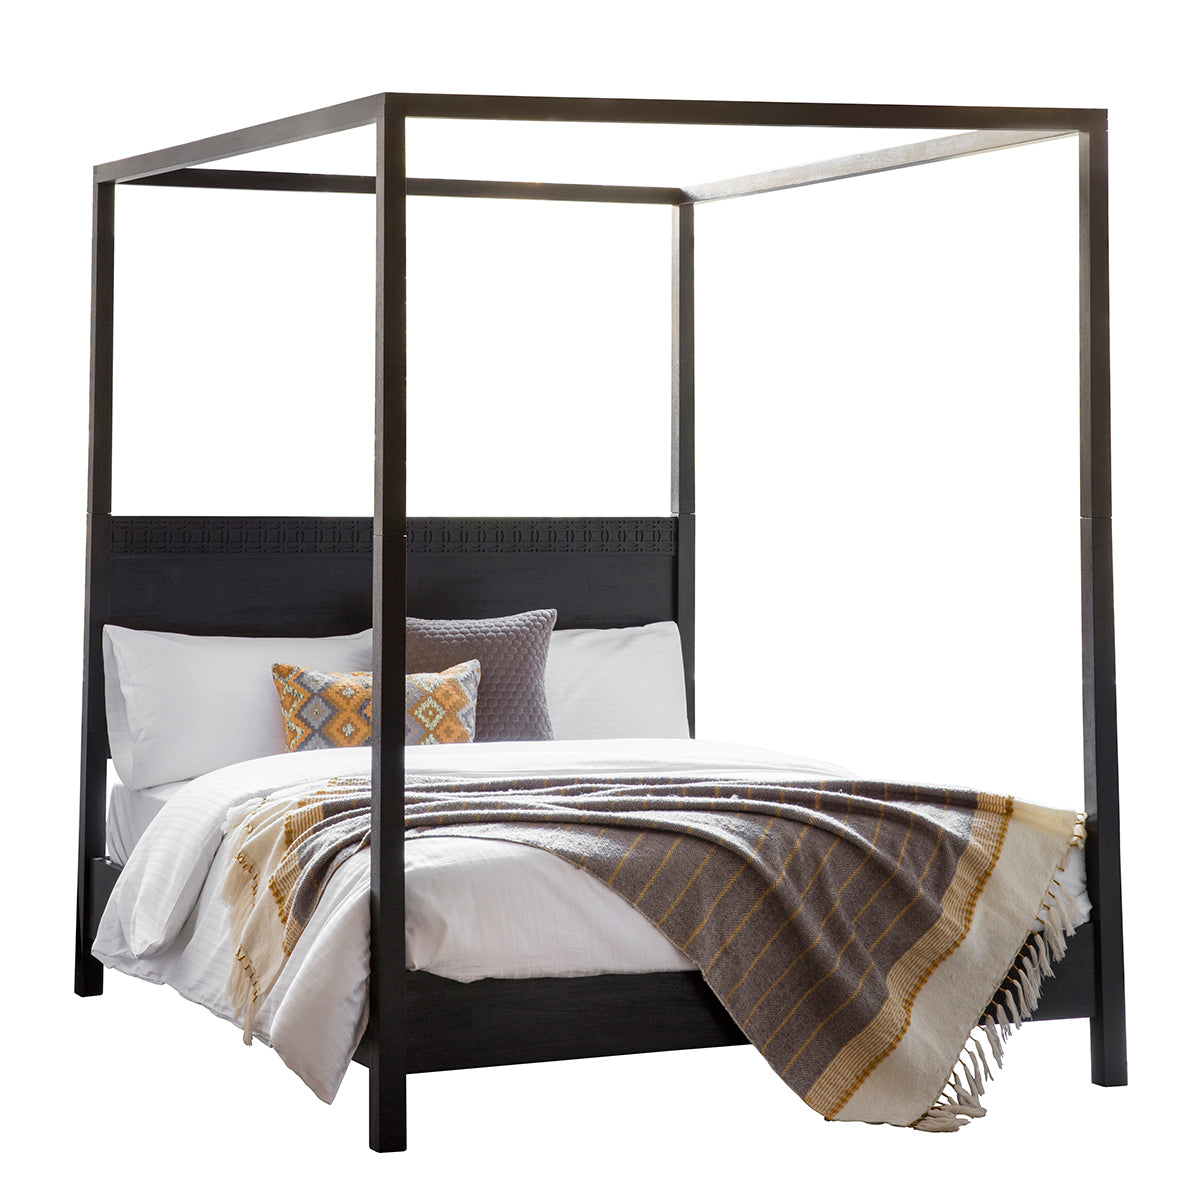 Greenwich 4 Poster Super King Size Bed in Dark Charcoal